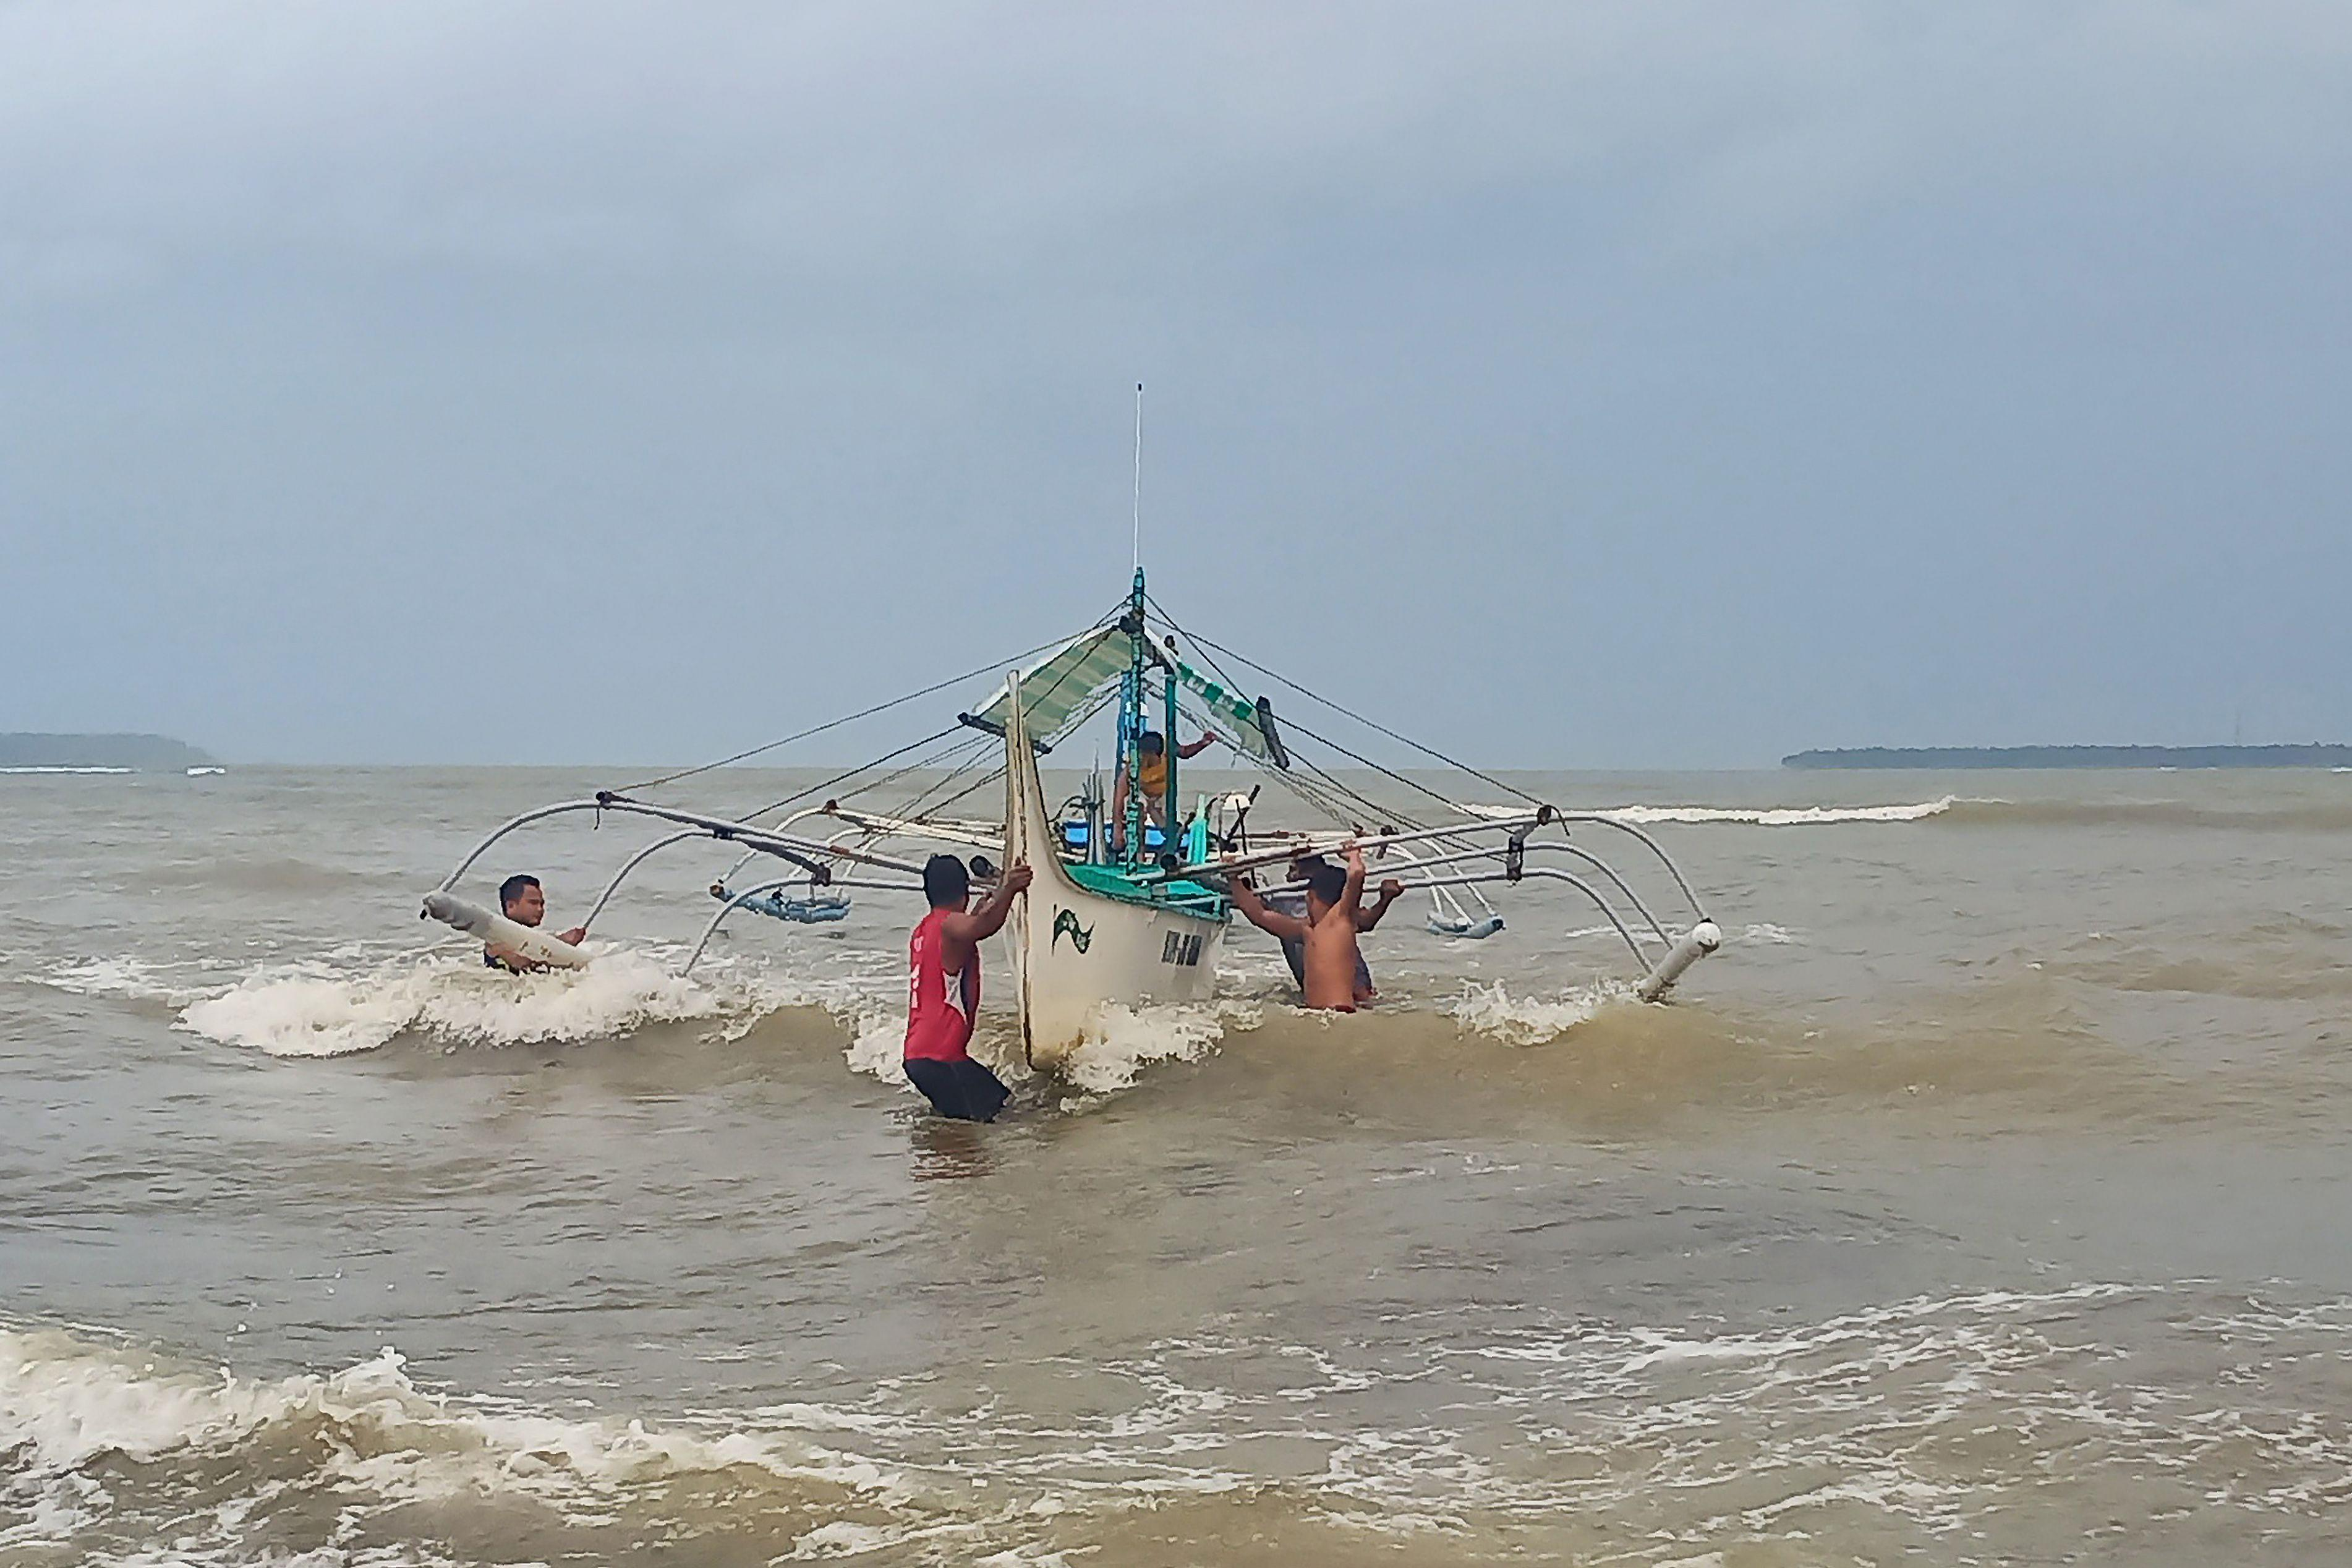 Residents help carry a wooden fishing boat into a secured area along the coast in Borongan town, Eastern Samar province, central Philippines, on December 2, 2019, as they prepare for Typhoon Kammuri. - The Philippines was braced for powerful Typhoon Kammuri as the storm churned closer, forcing evacuations and threatening plans for the Southeast Asian Games events near the capital Manila. (Photo by Alren BERONIO / AFP) (Photo by ALREN BERONIO/AFP via Getty Images)